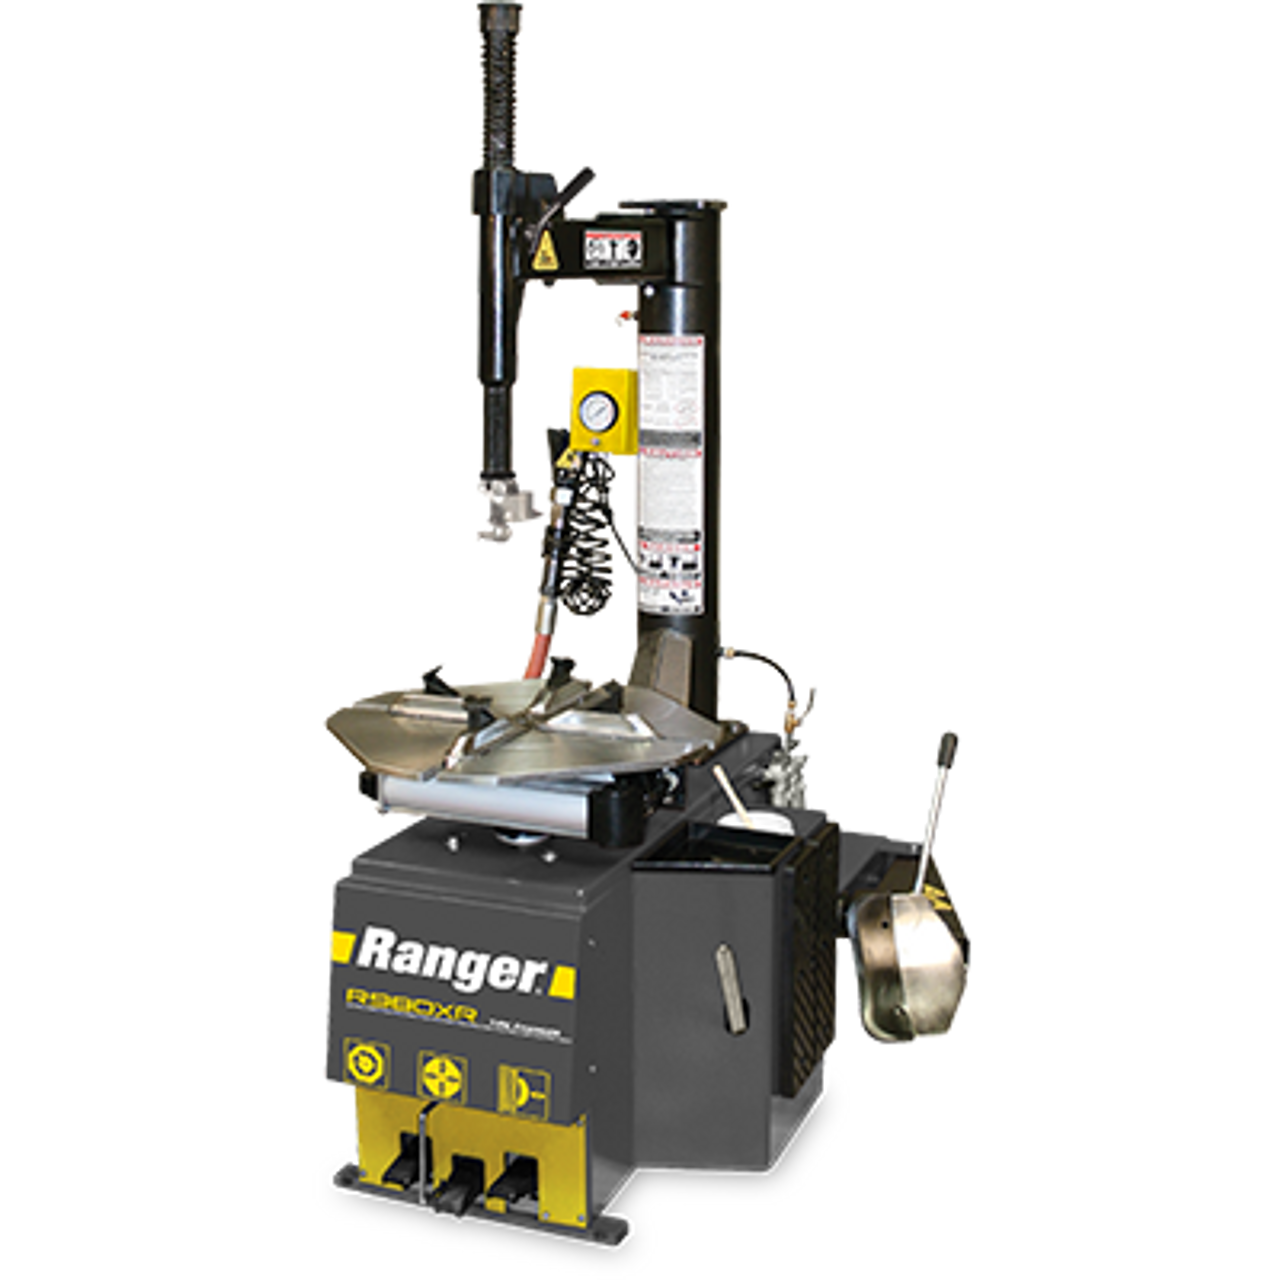 R980XR-Tire-Changer-5140146-Ranger-Products